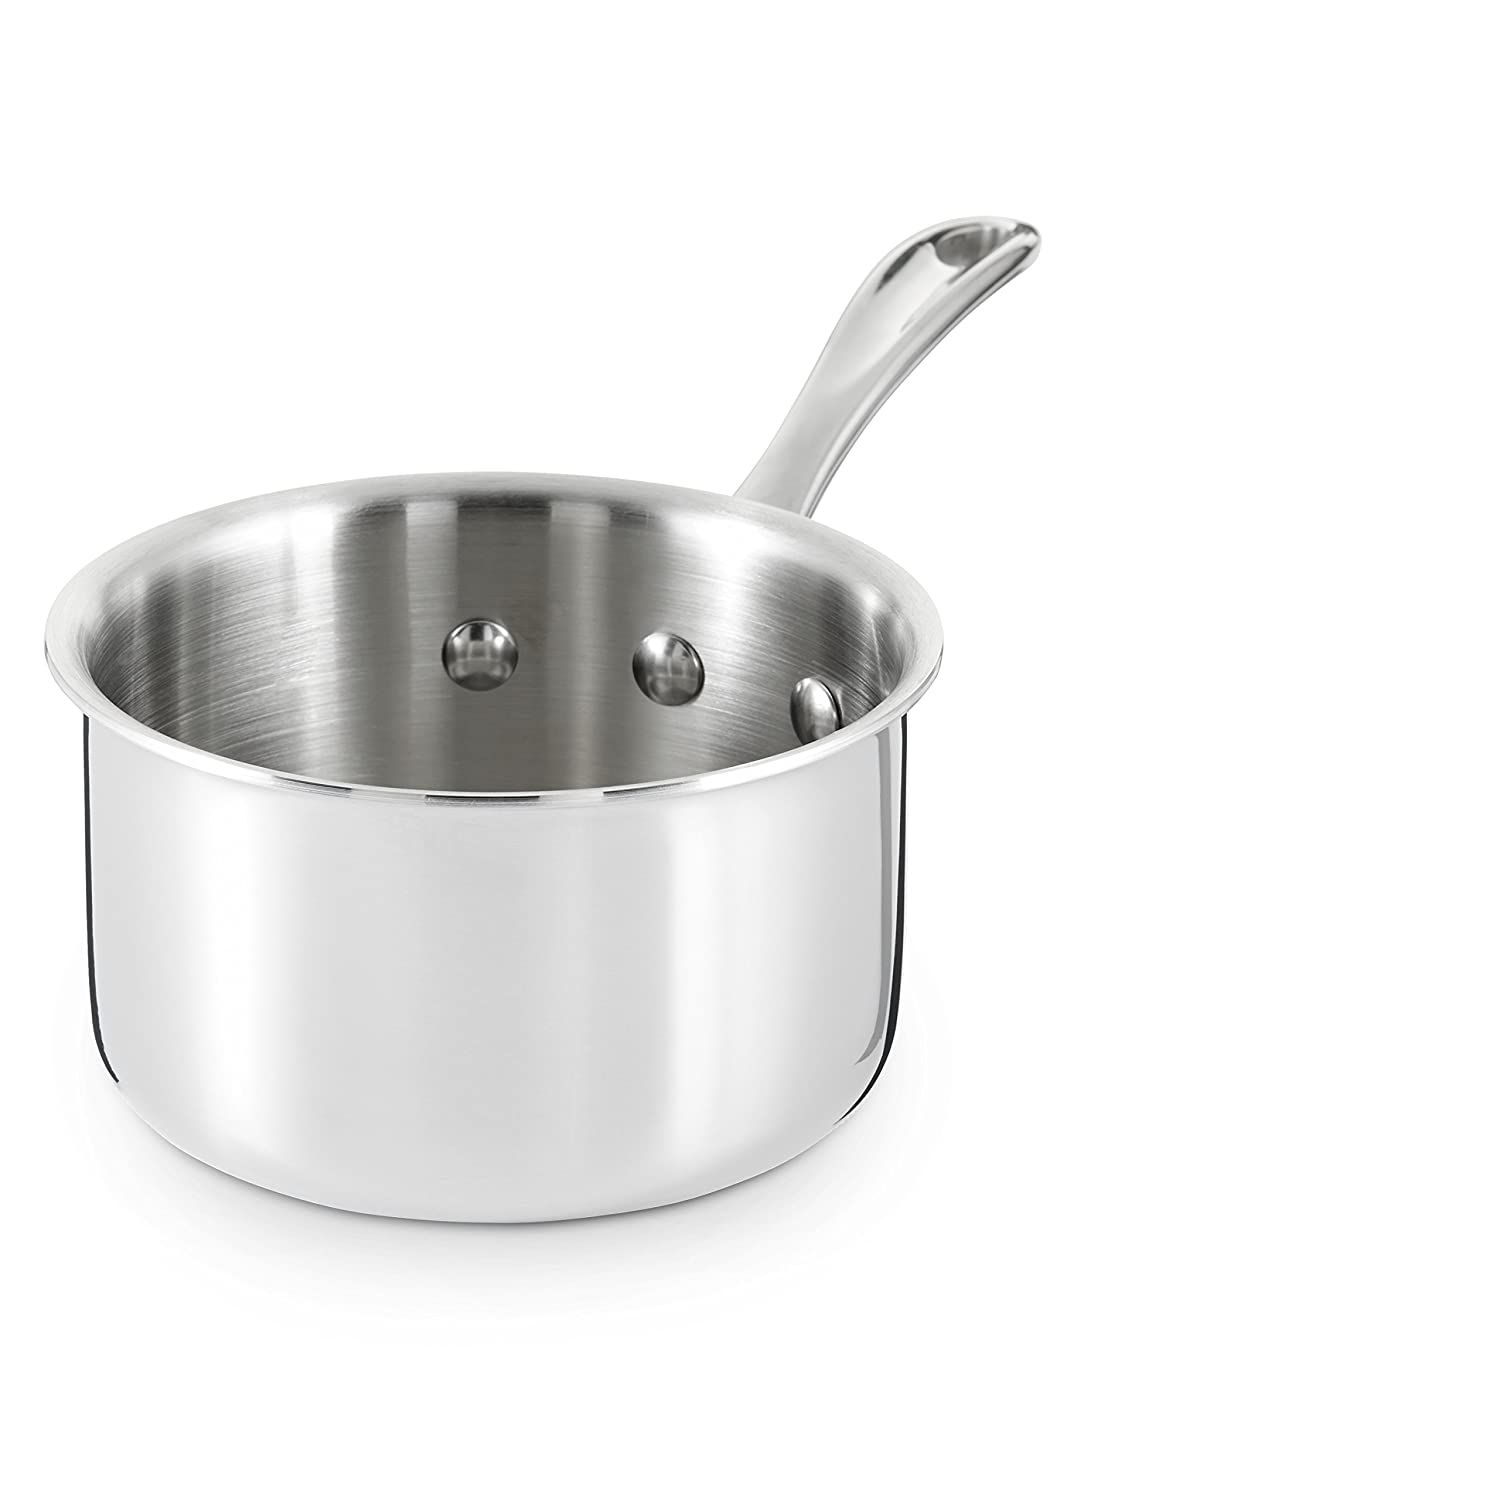 Calphalon Tri-Ply Stainless Steel 1-Quart Open Sauce Pan